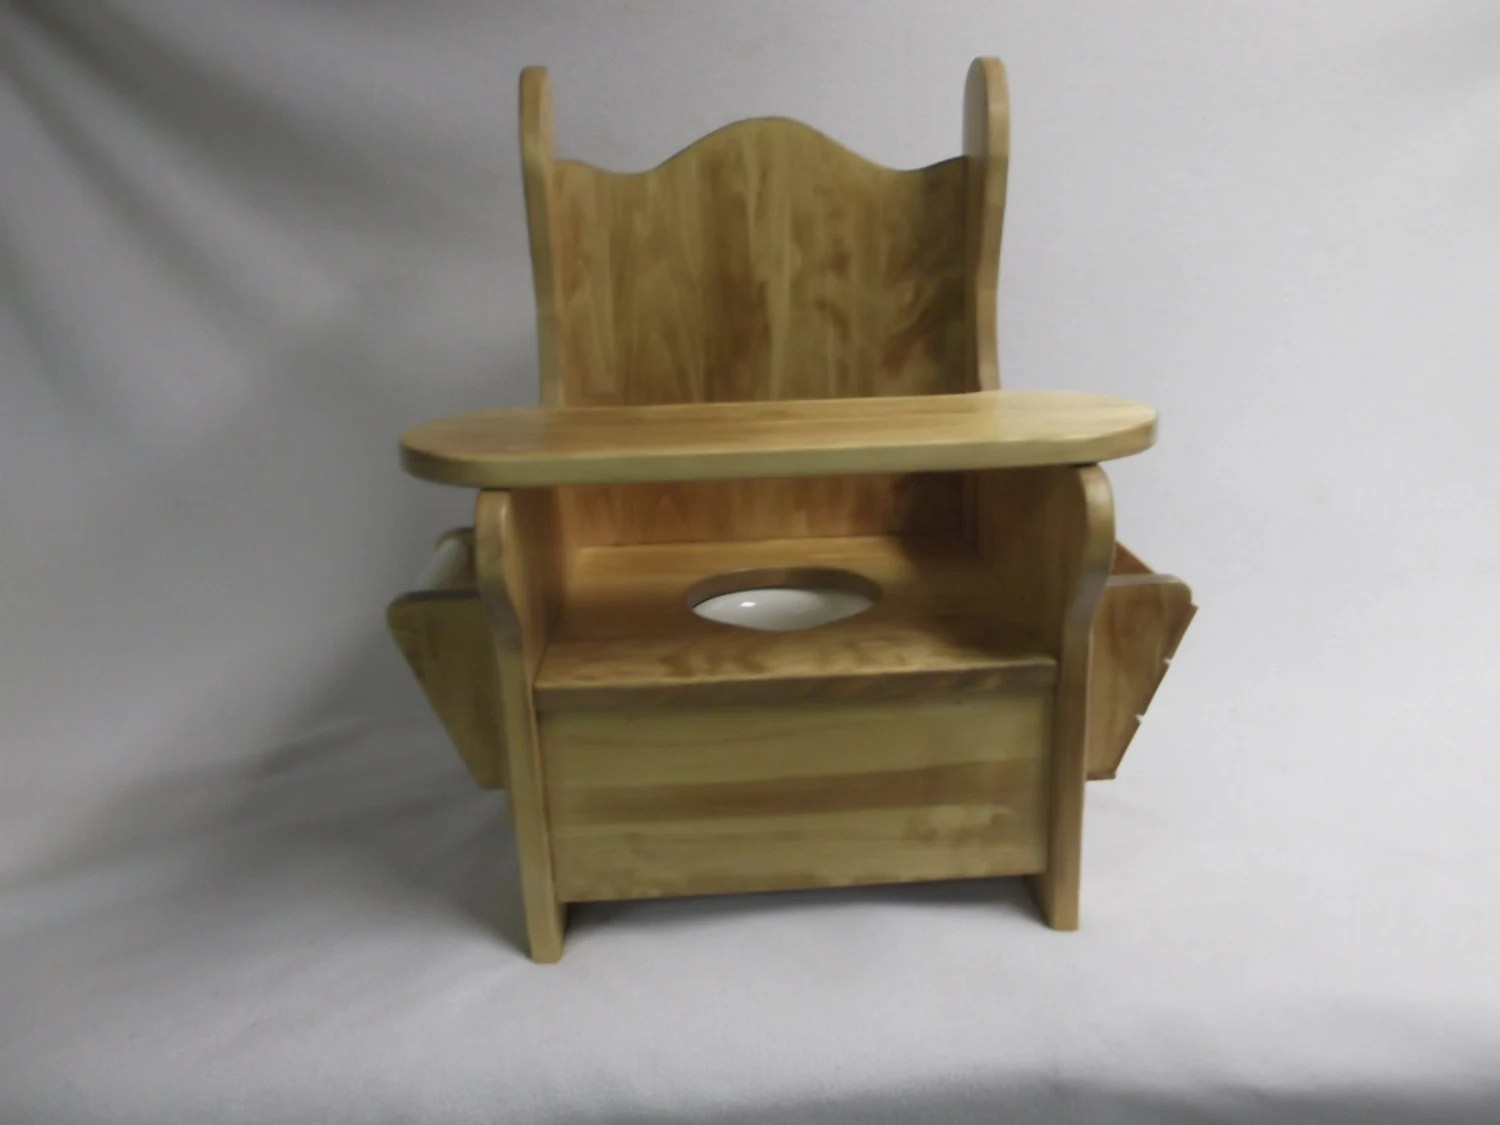 wooden potty training chair black leather modern large w tray tp holder and book by wonderwoodshop